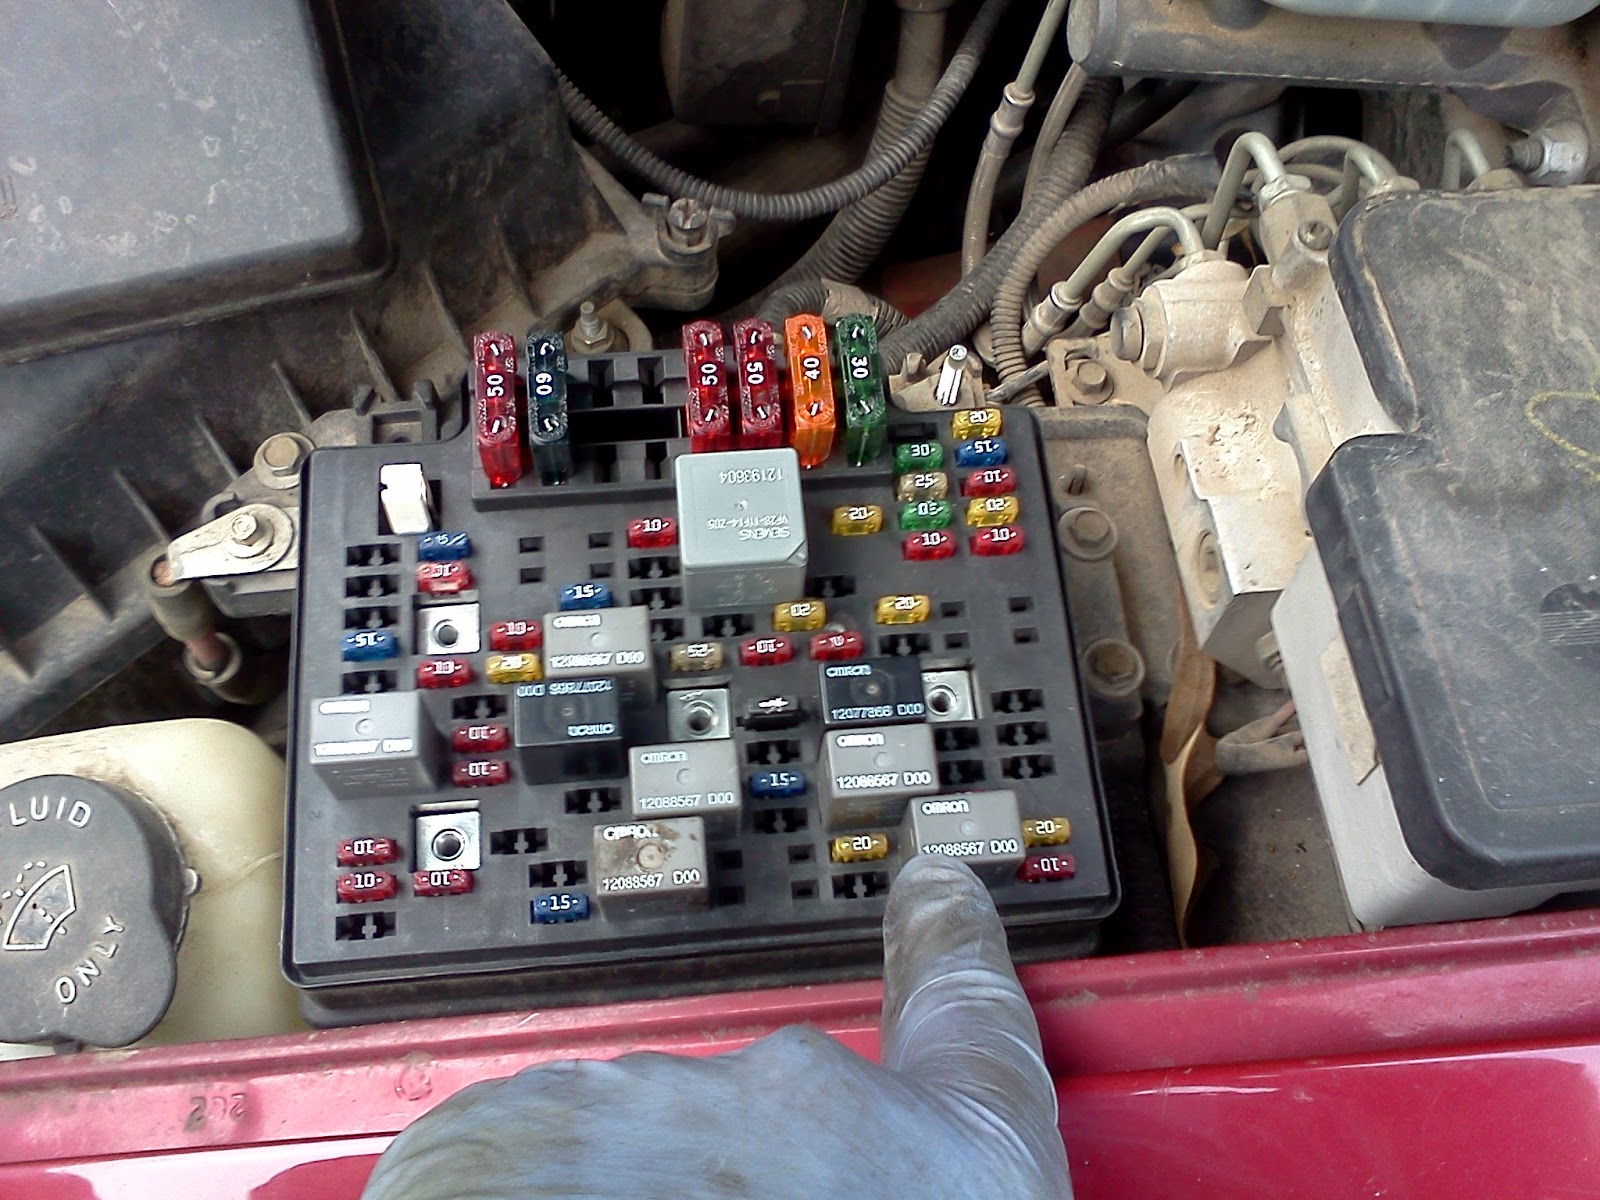 underhood fuse box diagram 1994 f150 ford 96 s10 rear brake lights help   s 10 forum  96 s10 rear brake lights help   s 10 forum